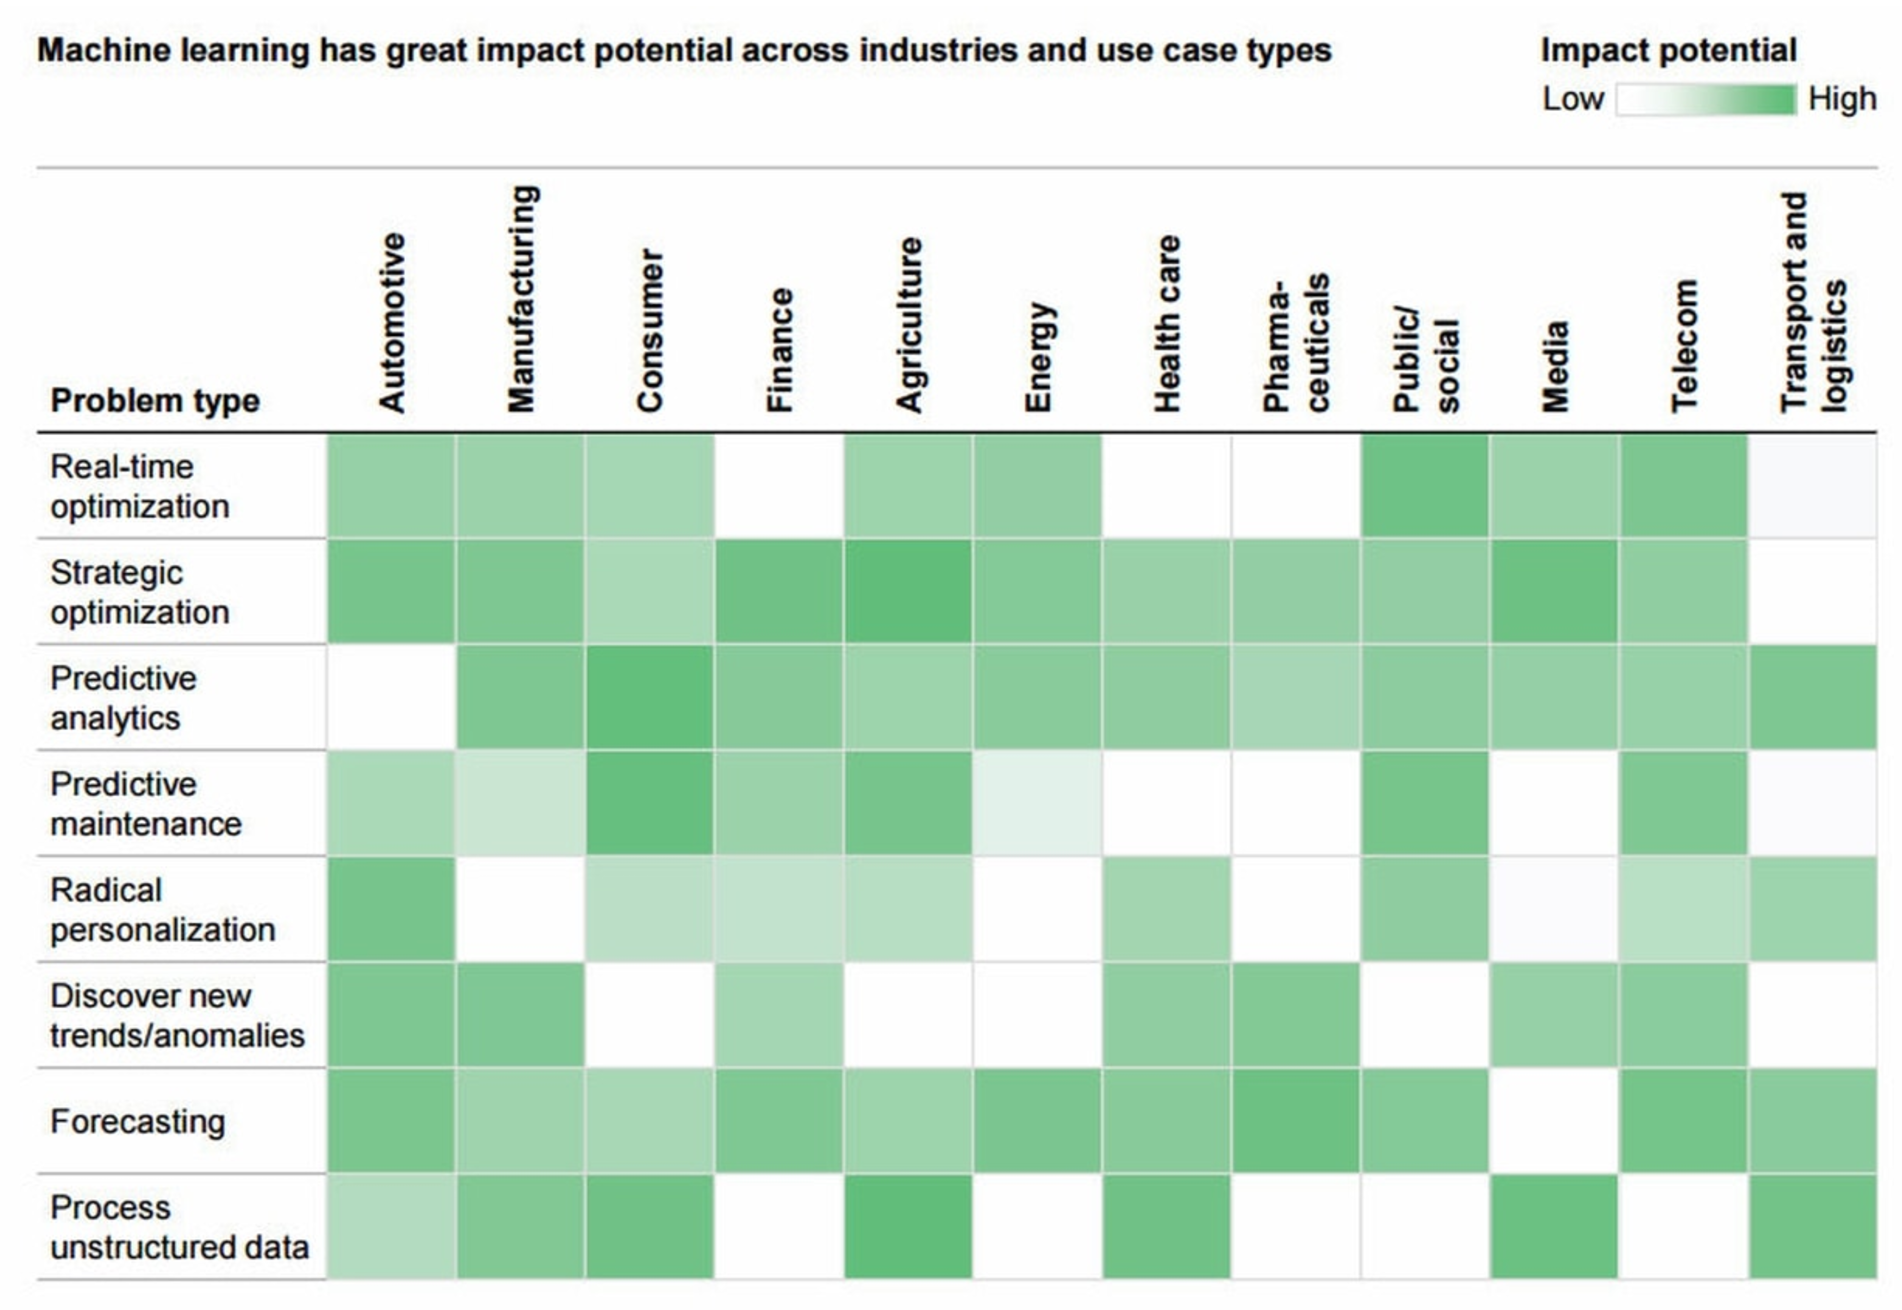 120 machine learning business ideas from the latest mckinsey report